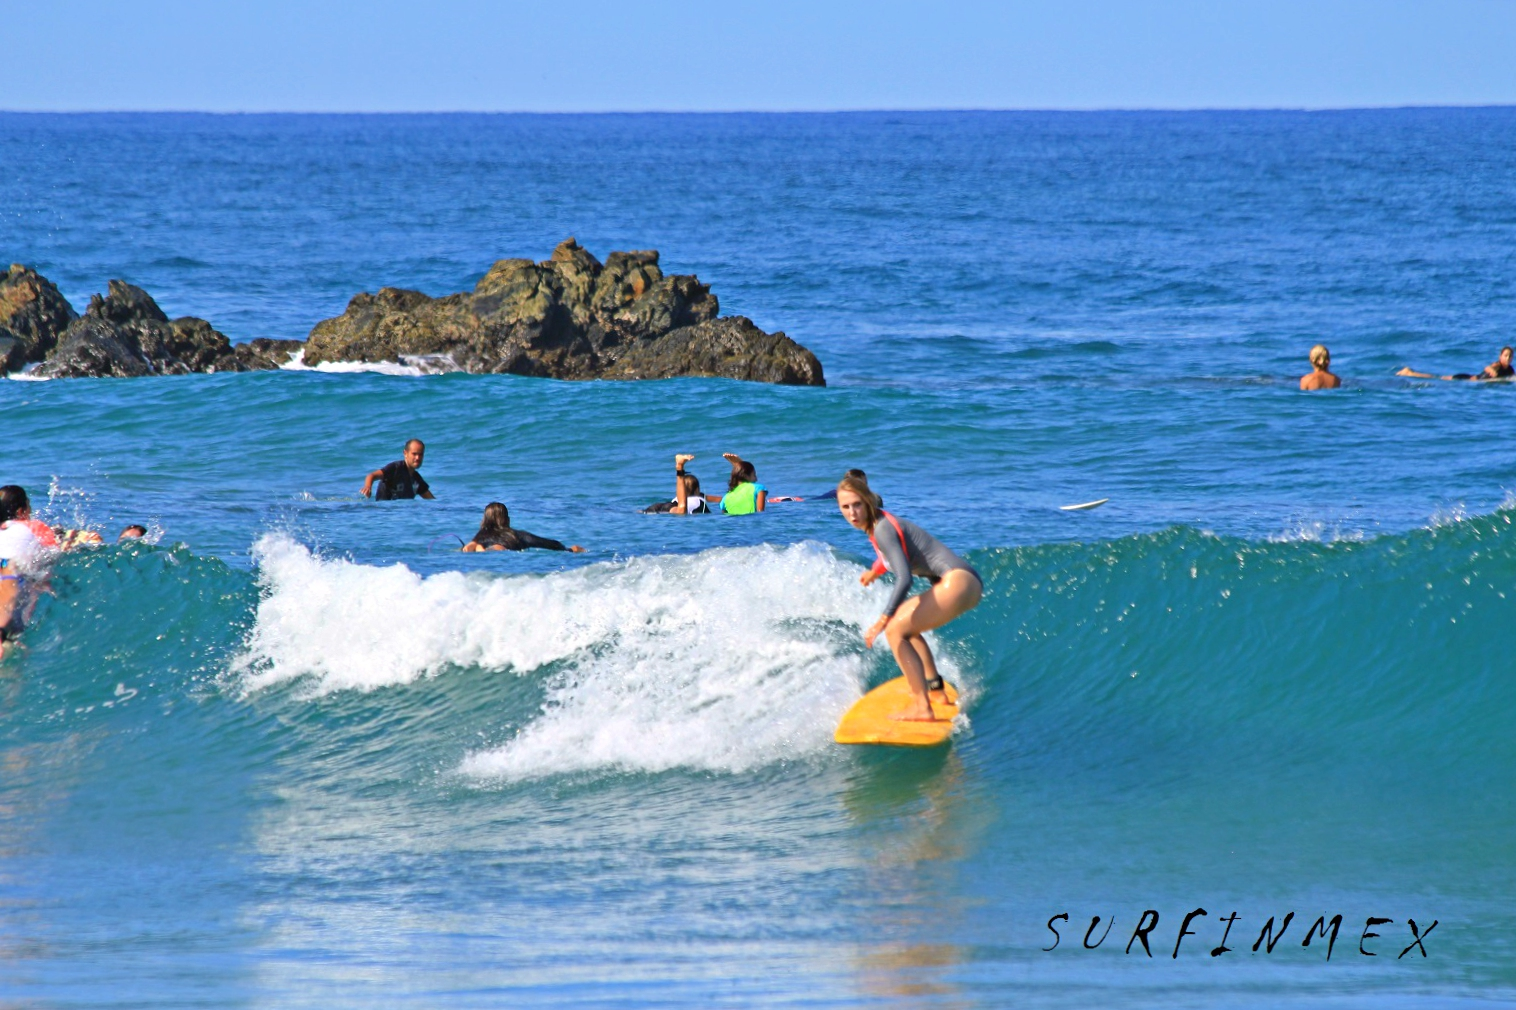 B surfer mexico